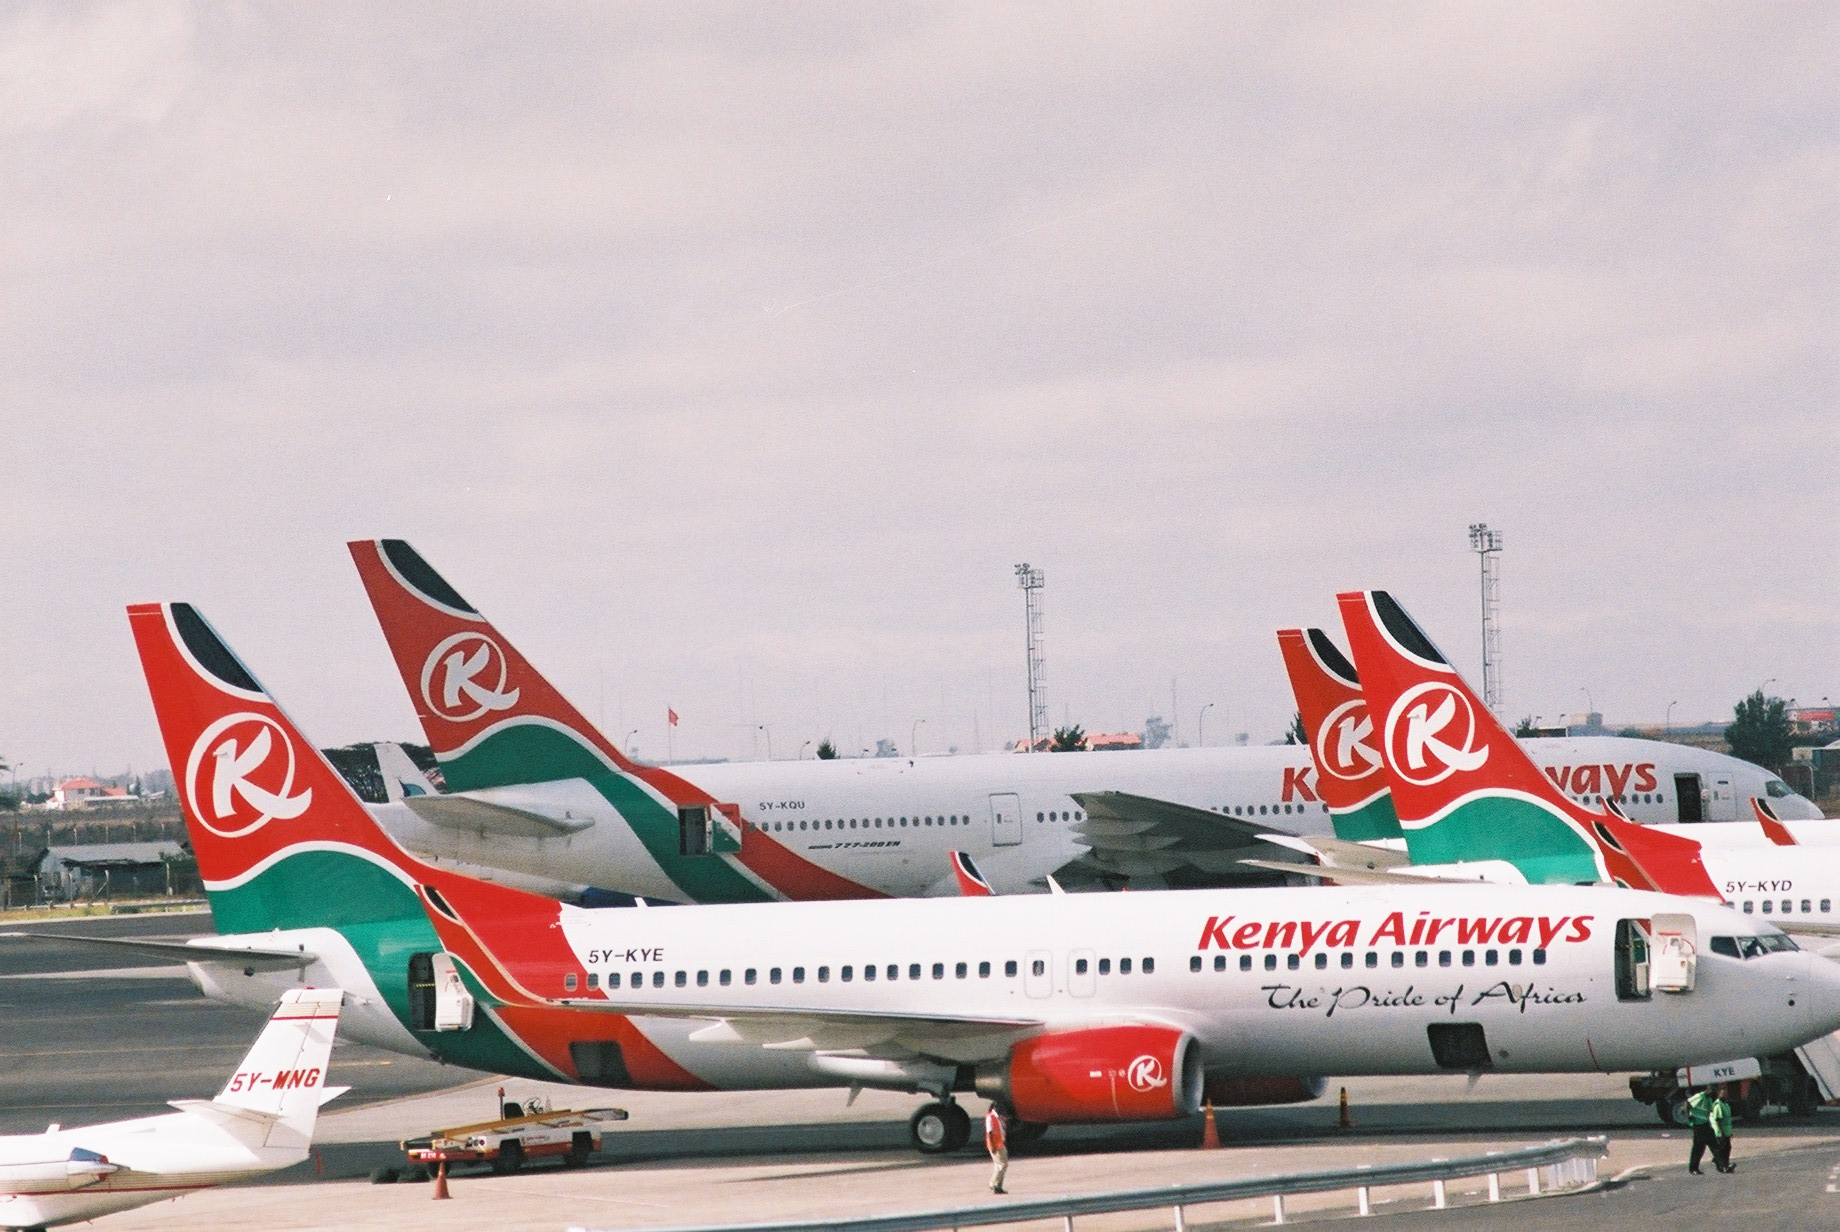 Kenya Airways submits proposal to KAA over Nairobi hub